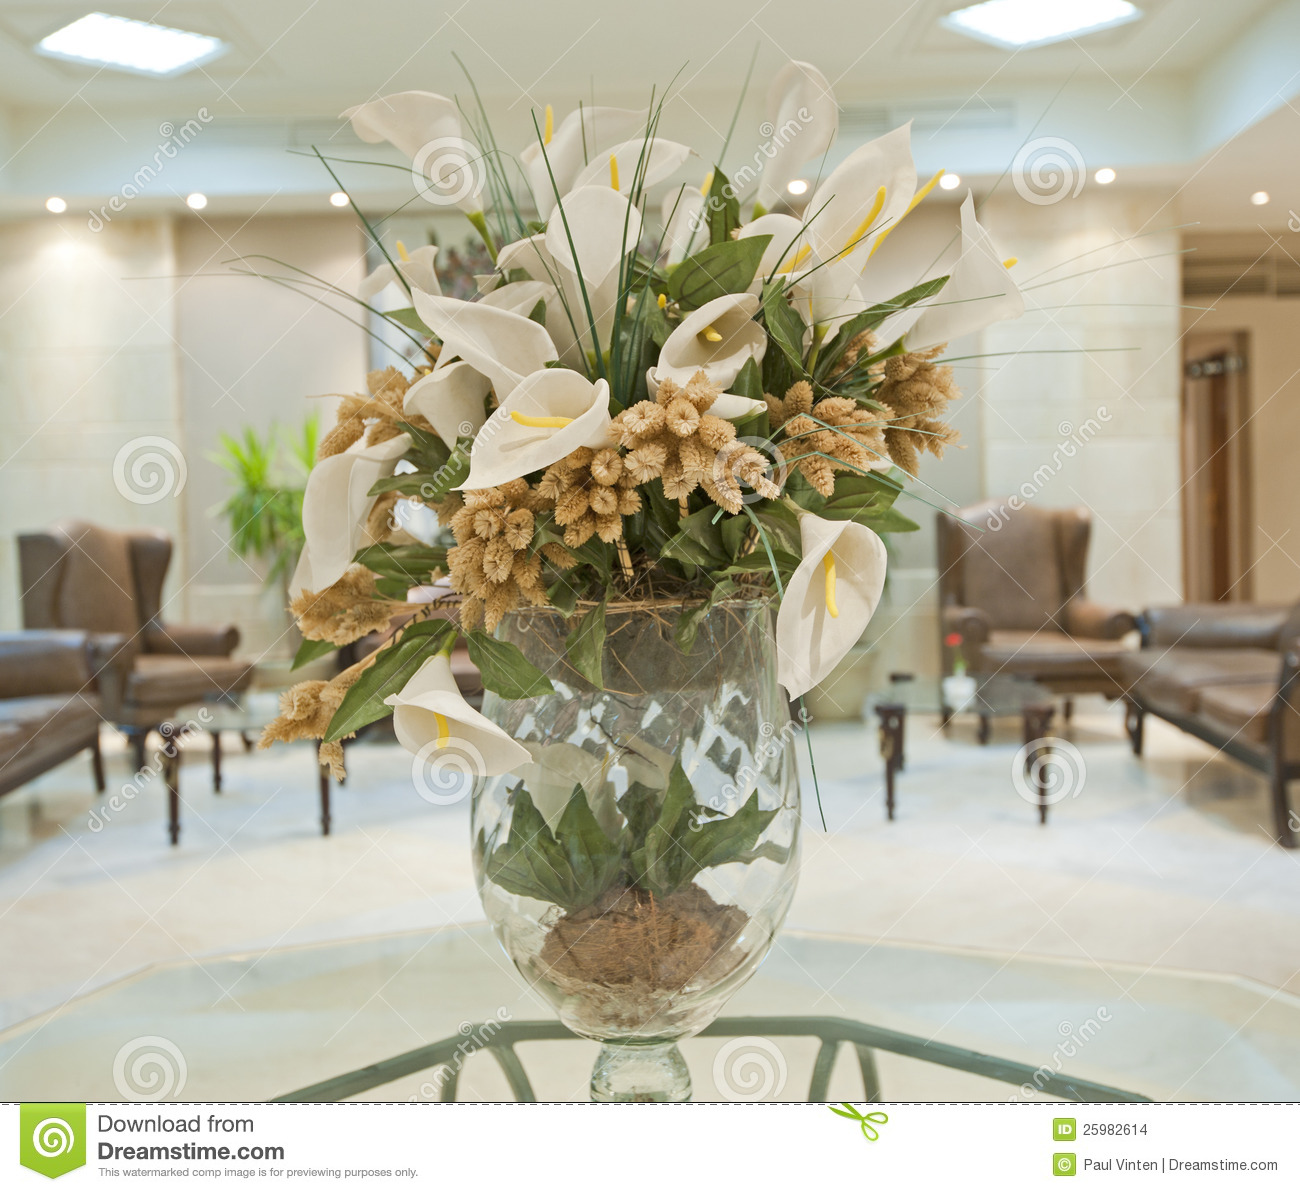 Flower Display In A Hotel Lobby Stock Photo Image Of Lobby Display 25982614